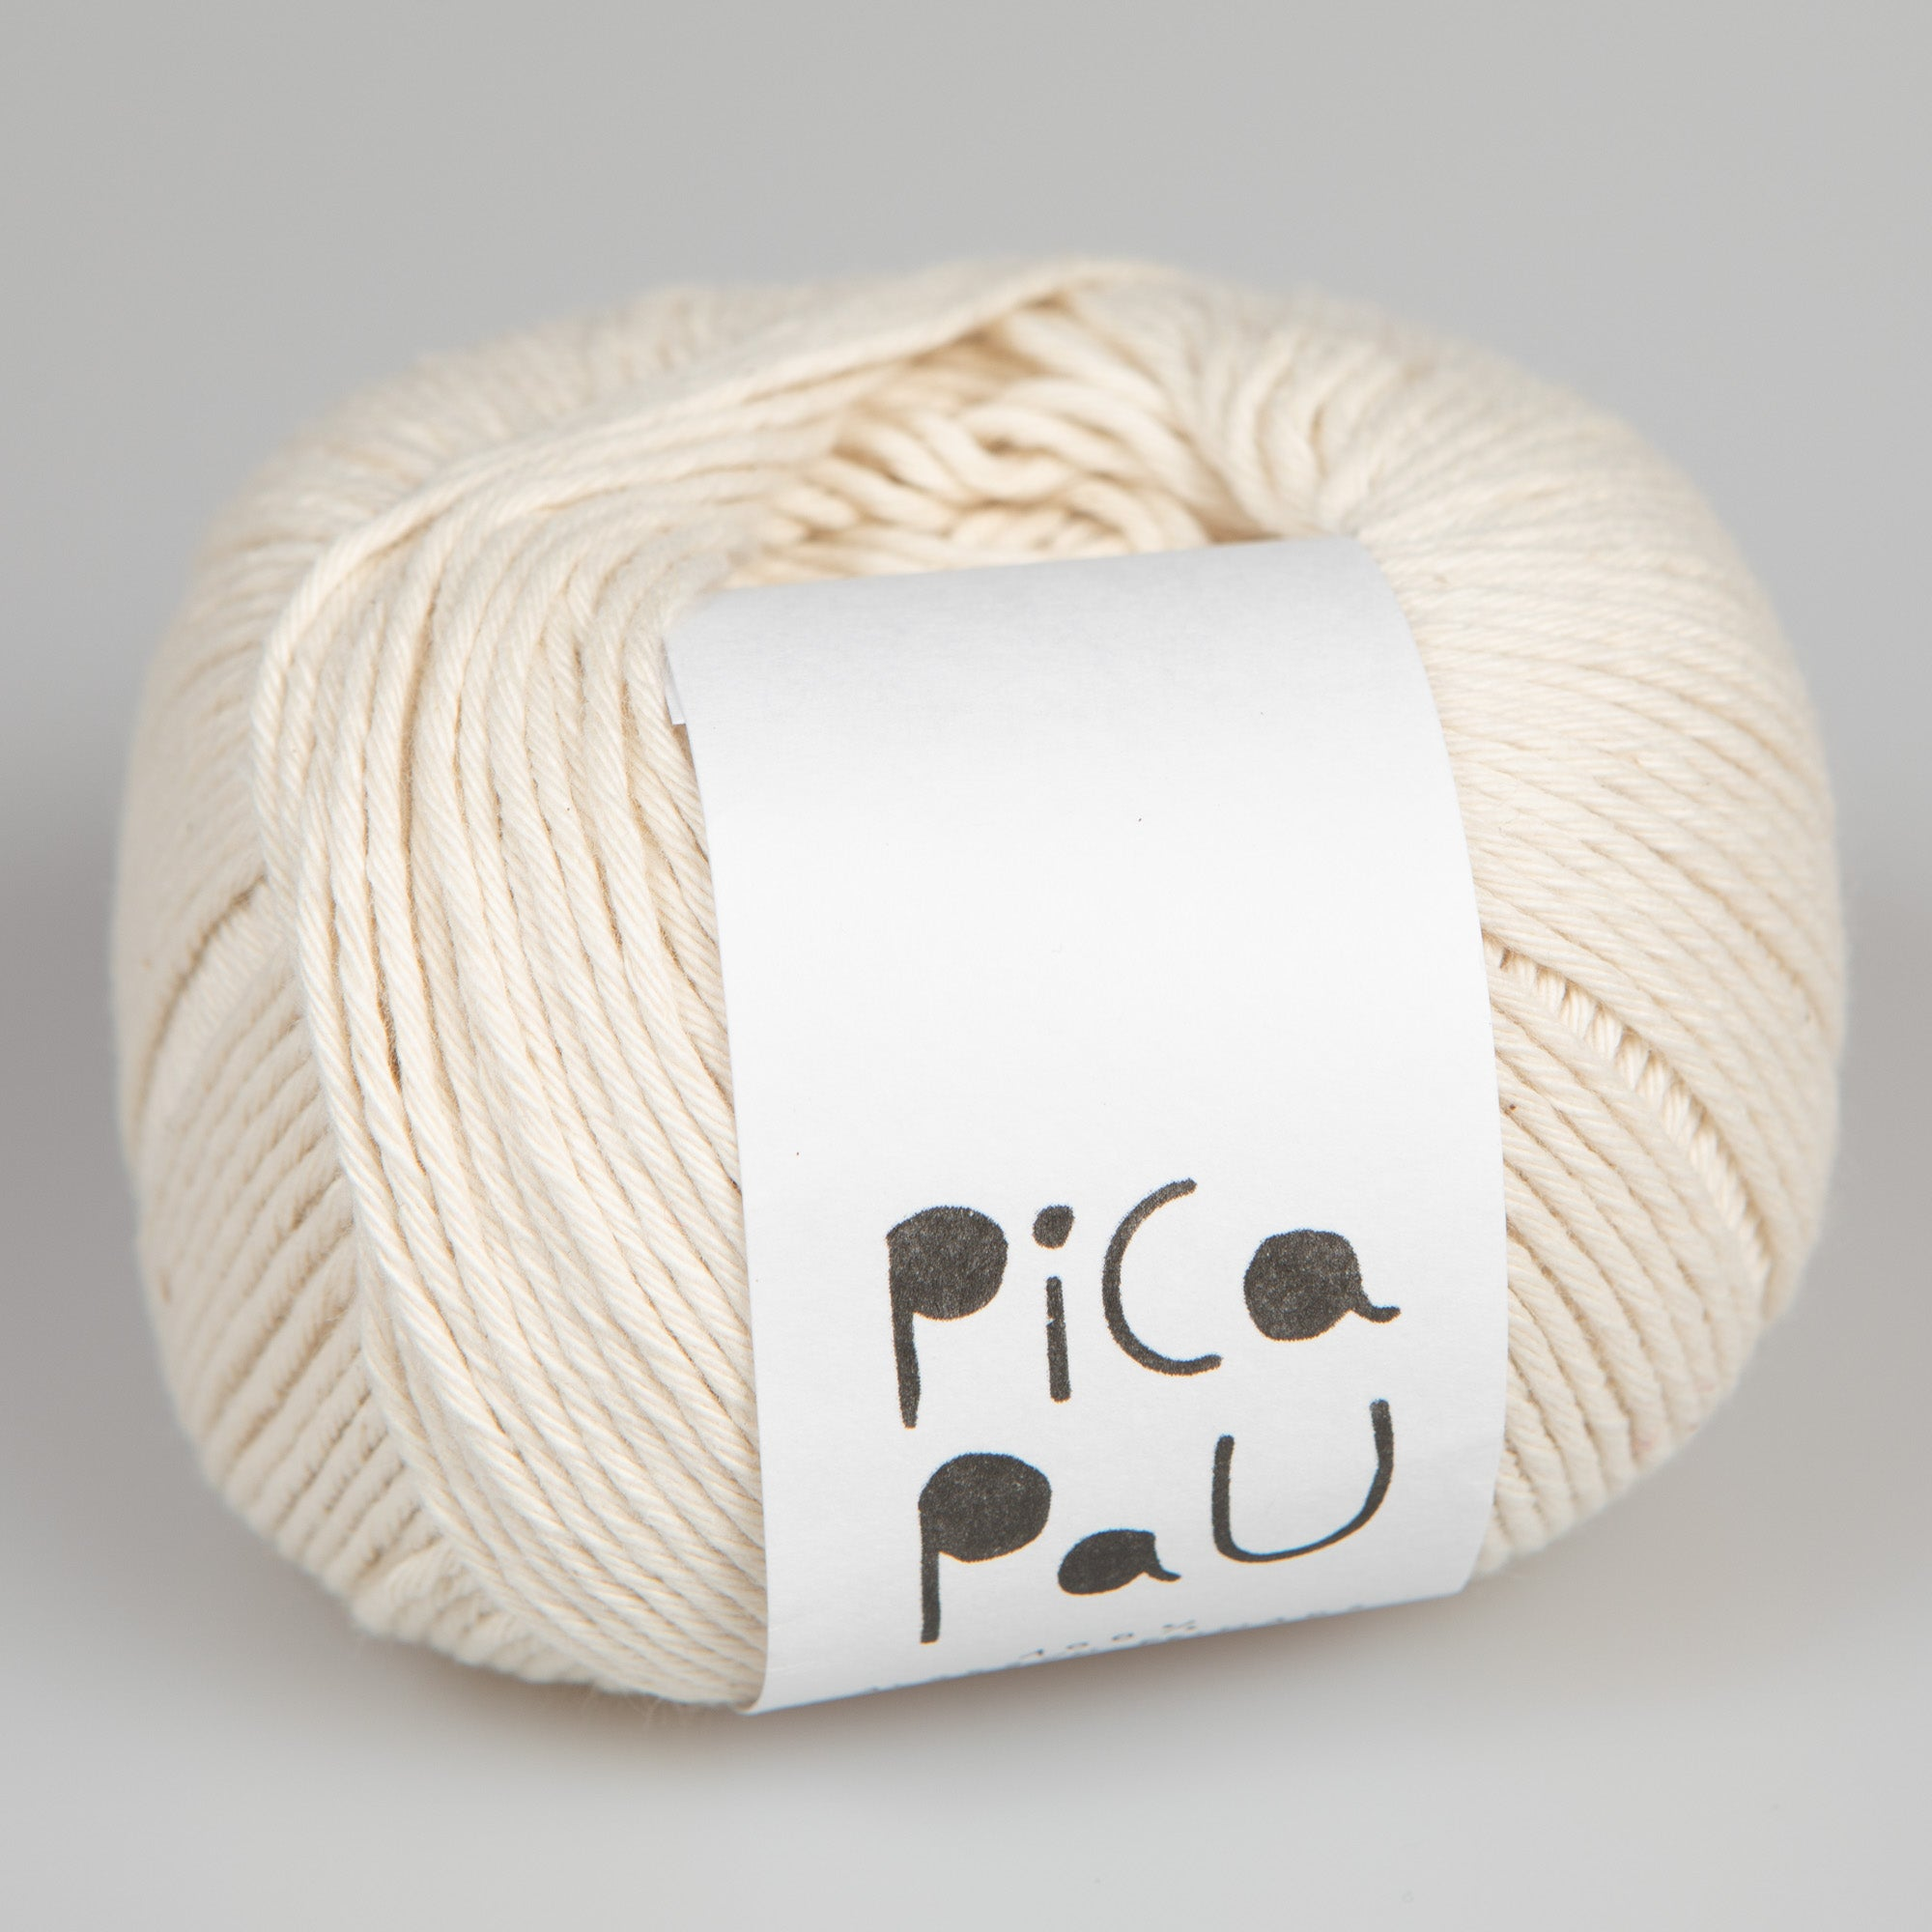 Pica Pau Cotton Yarn / 100g Worsted